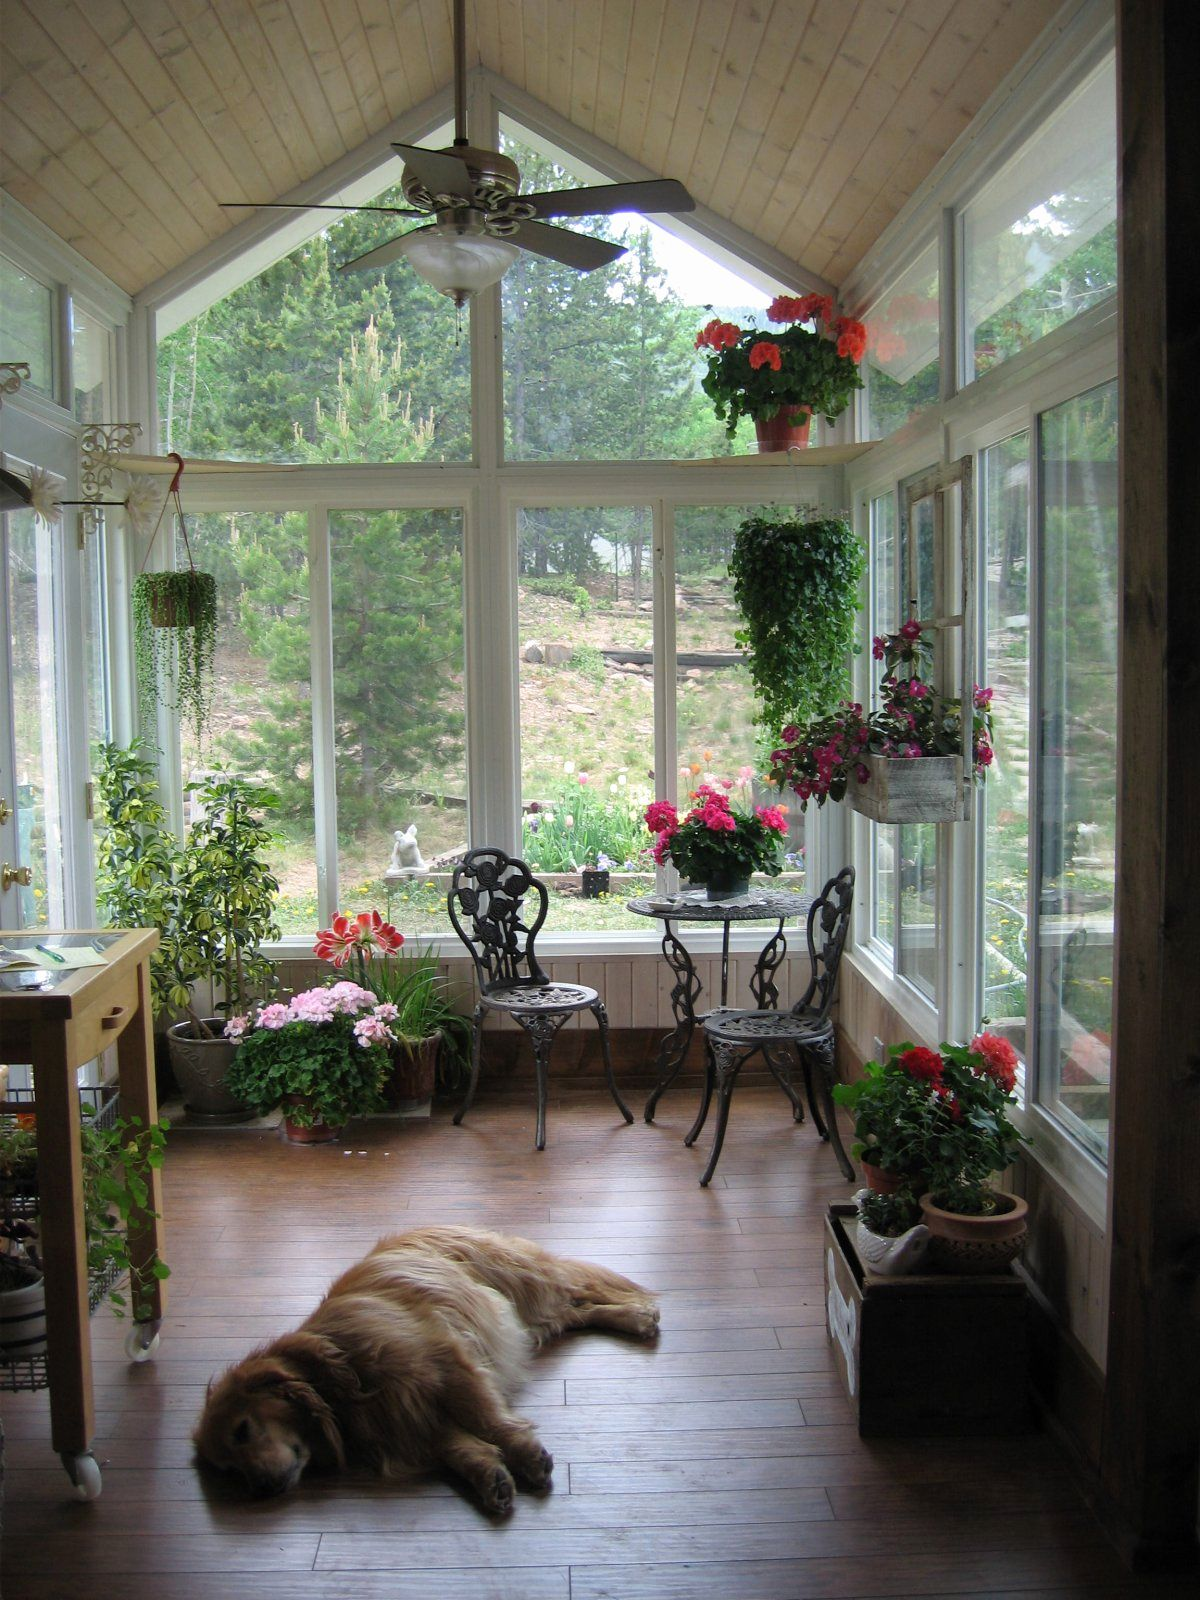 Indoor Sunroom Furniture Ideas ... | Sunroom decorating, Small ...